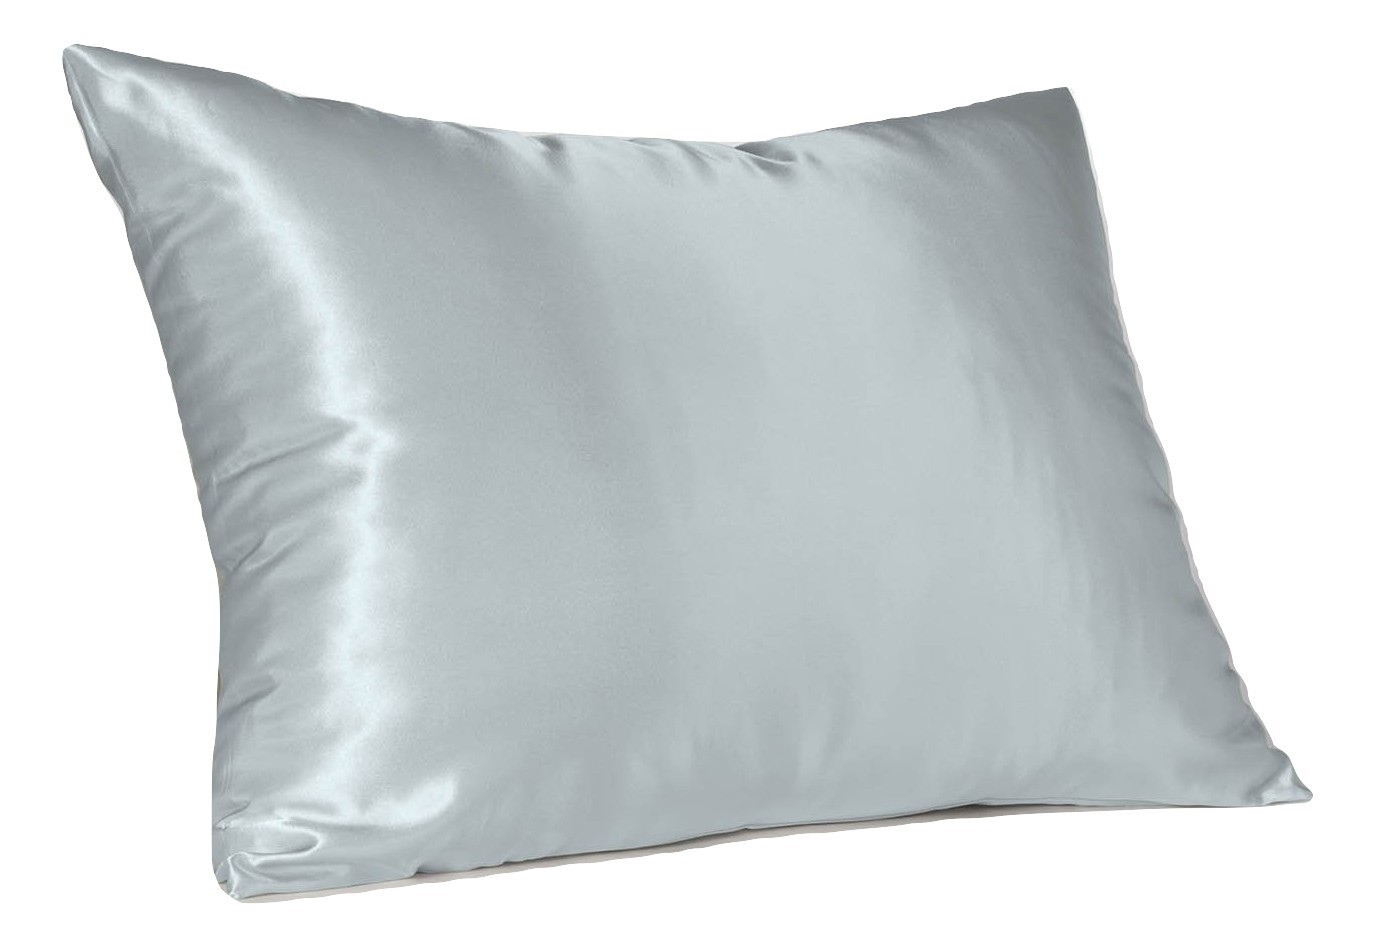 ShopBedding-Luxury-Satin-Pillowcase-for-Hair